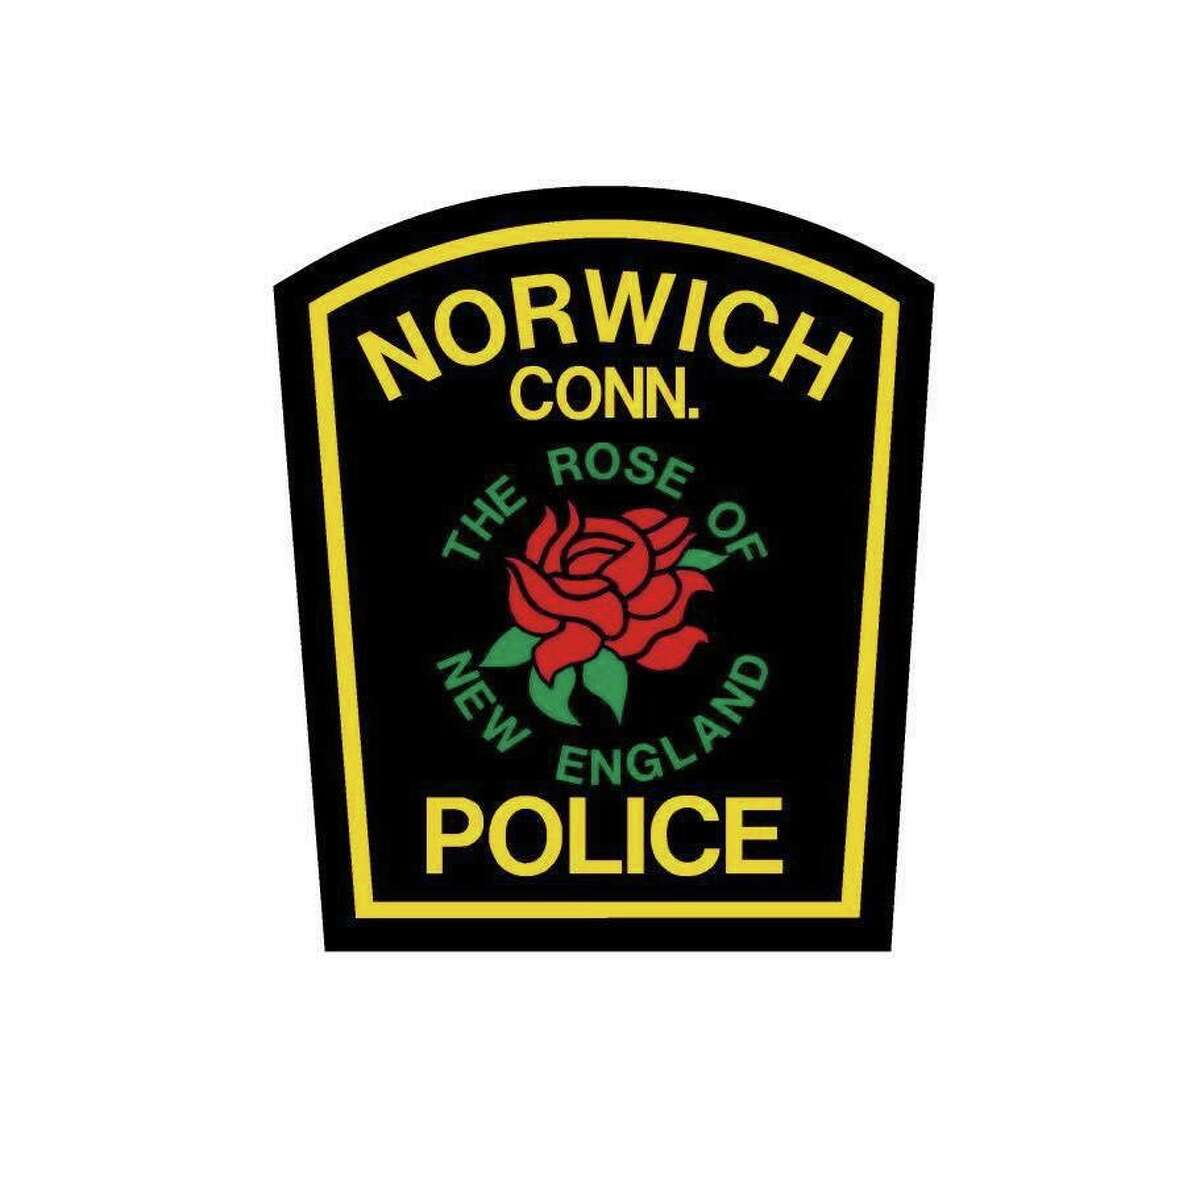 Schools in the Taftville area of Norwich were briefly locked down Thursday morning on a report of a